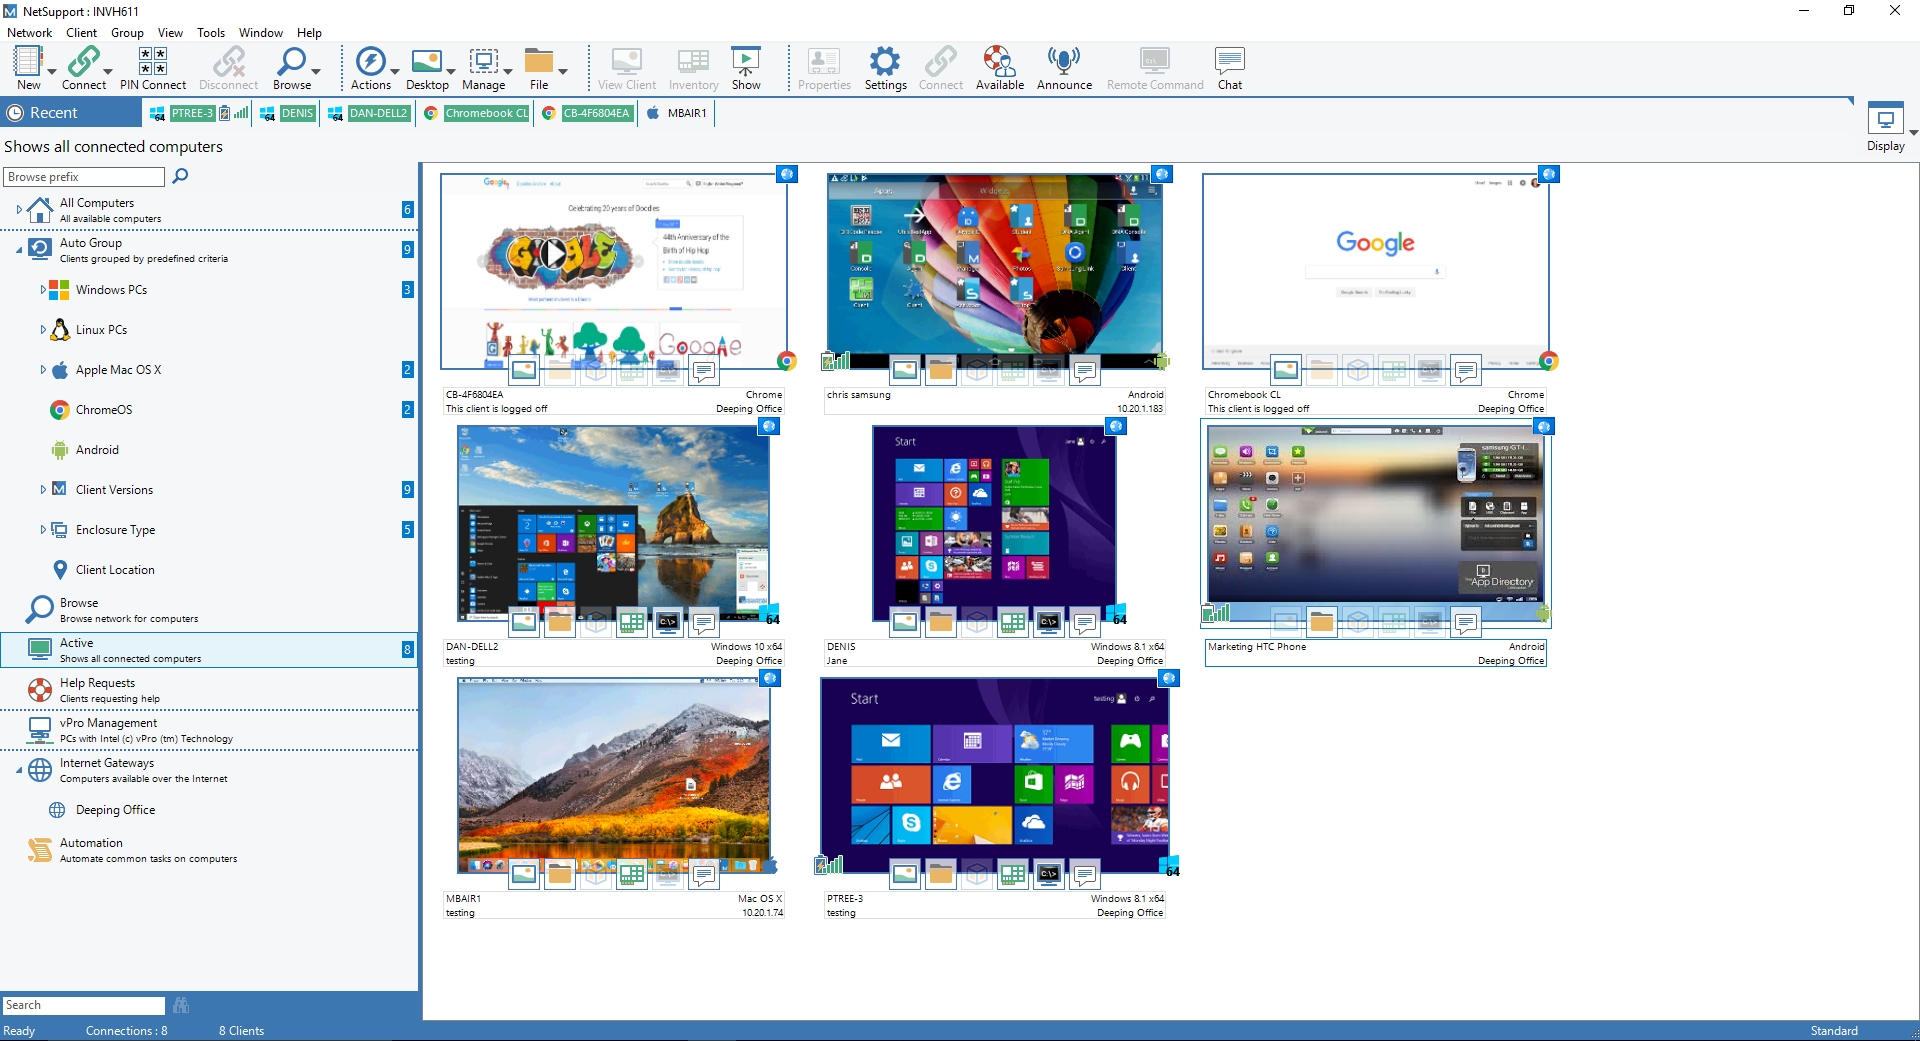 NetSupport Manager Software - NetSupport Manager Thumbnail View - Monitor multiple devices in a single view.